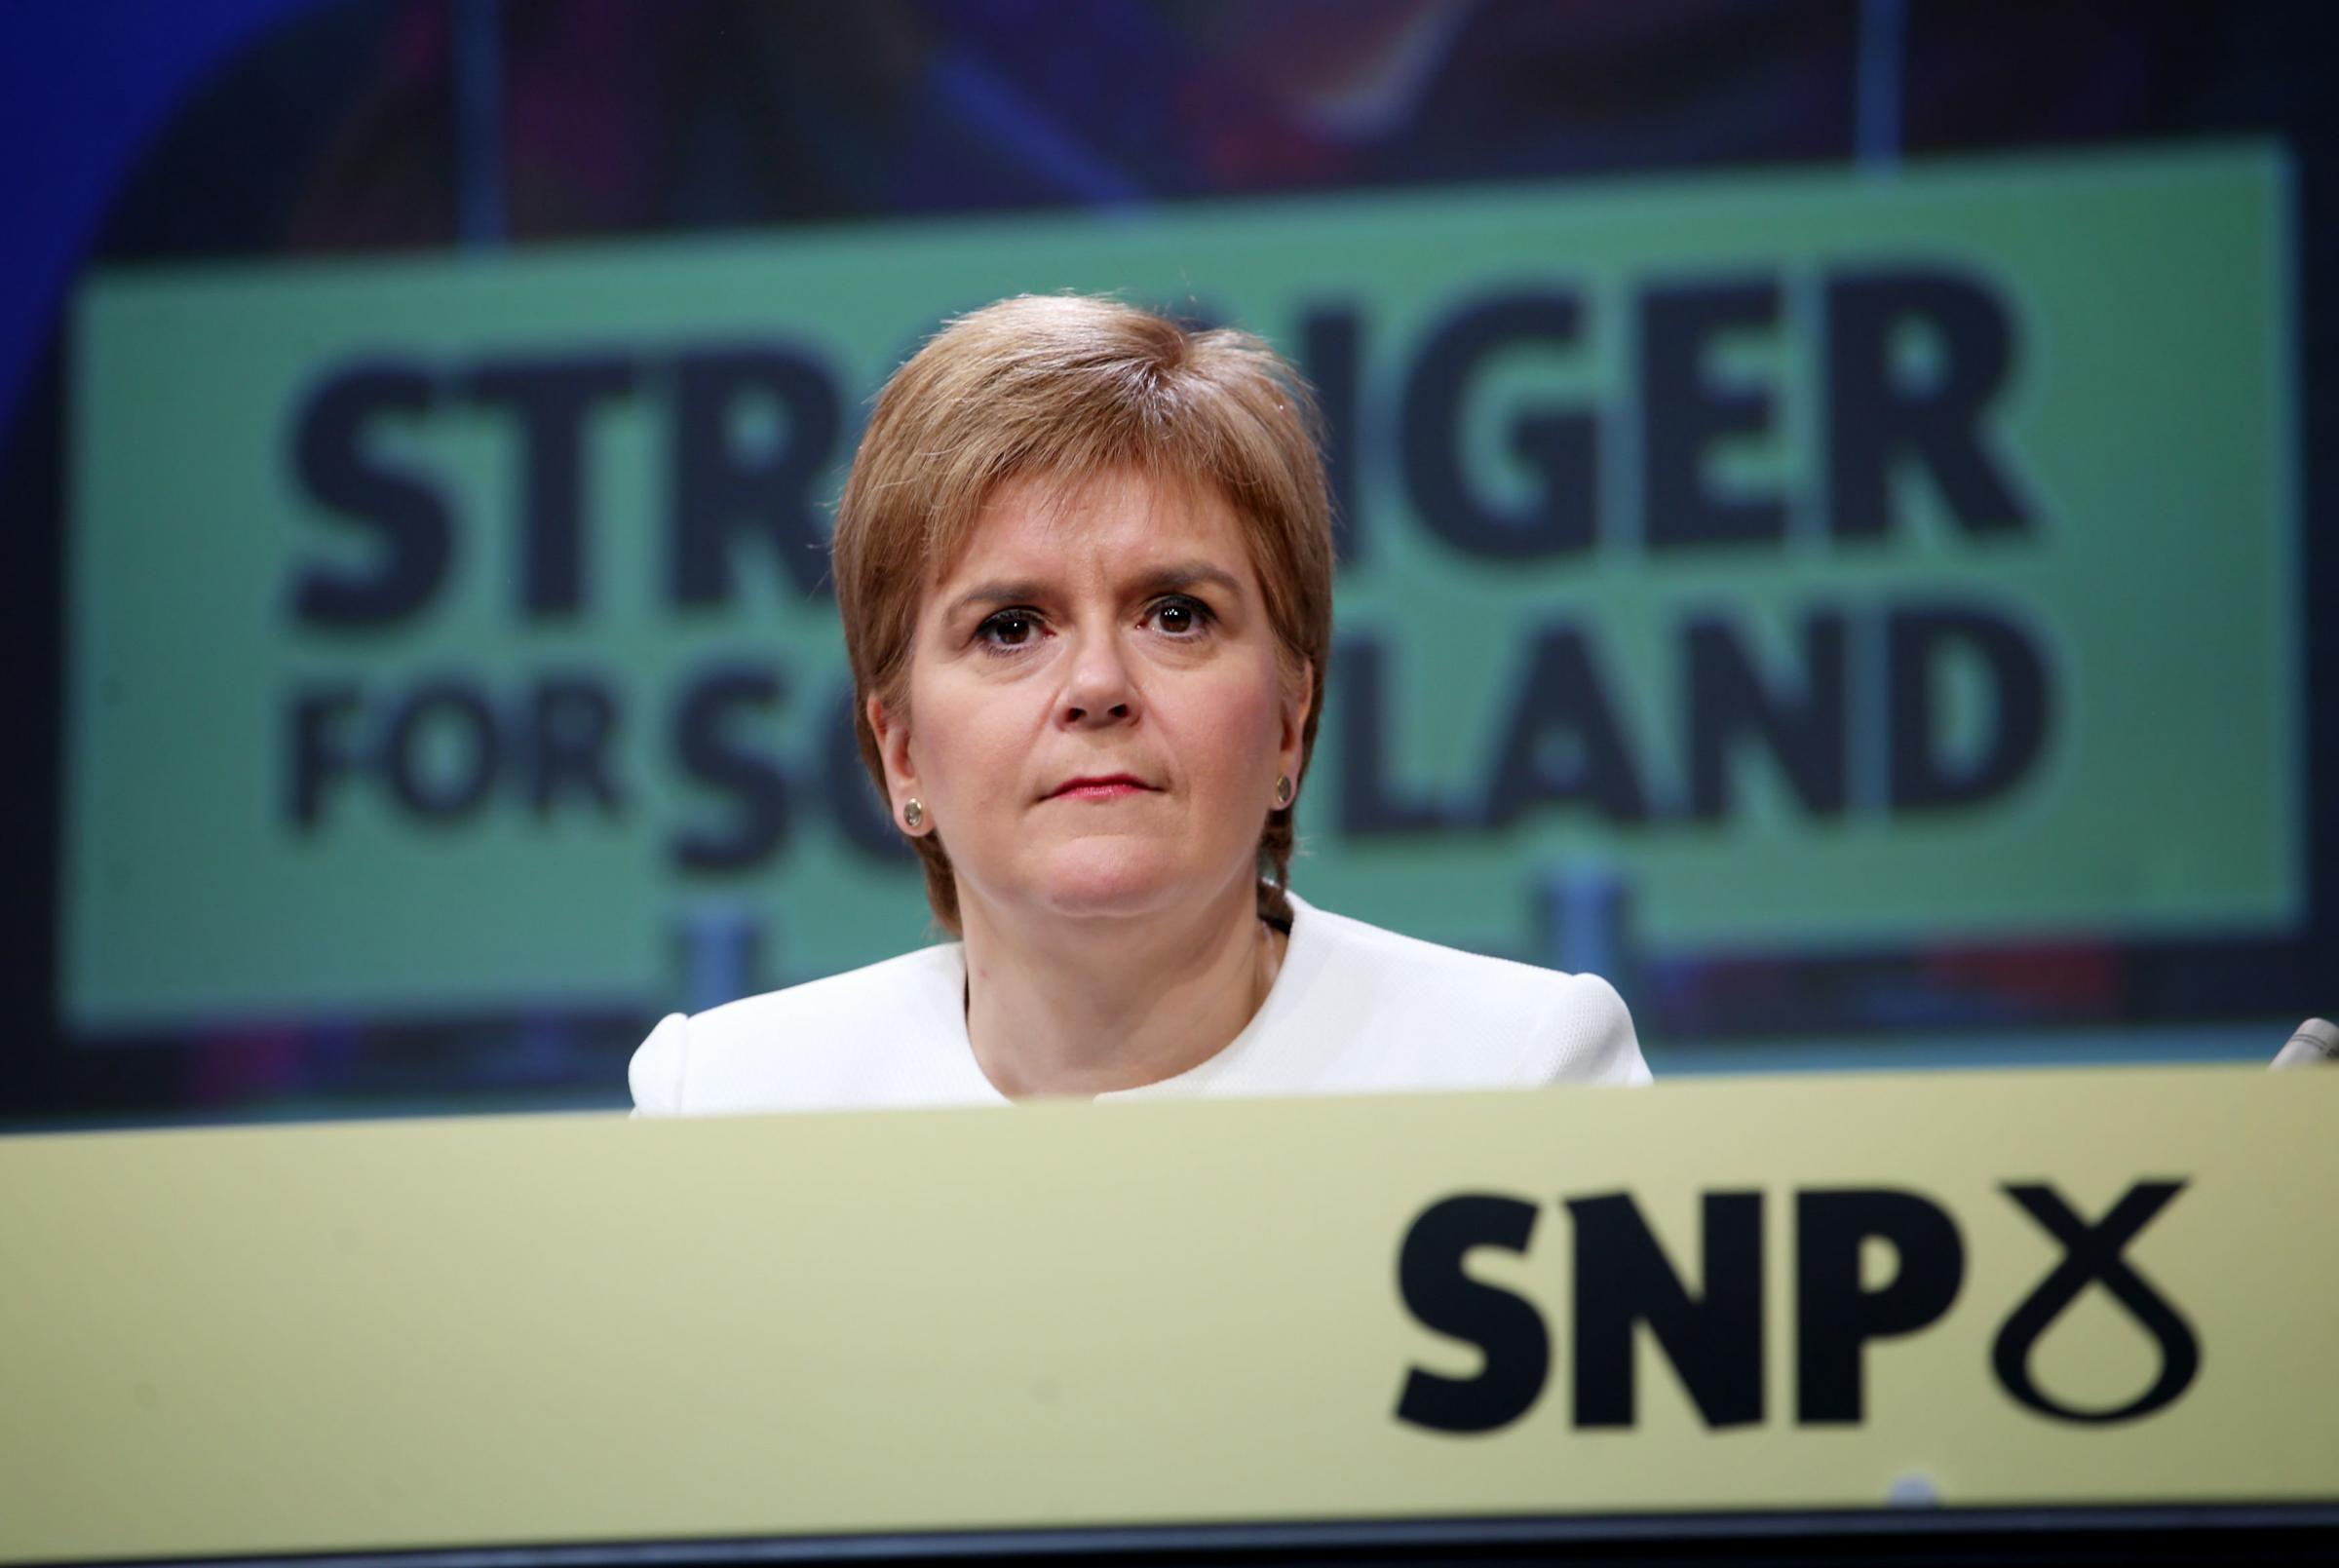 Only 1 in 4 back Sturgeon calling for second independence referendum this autumn